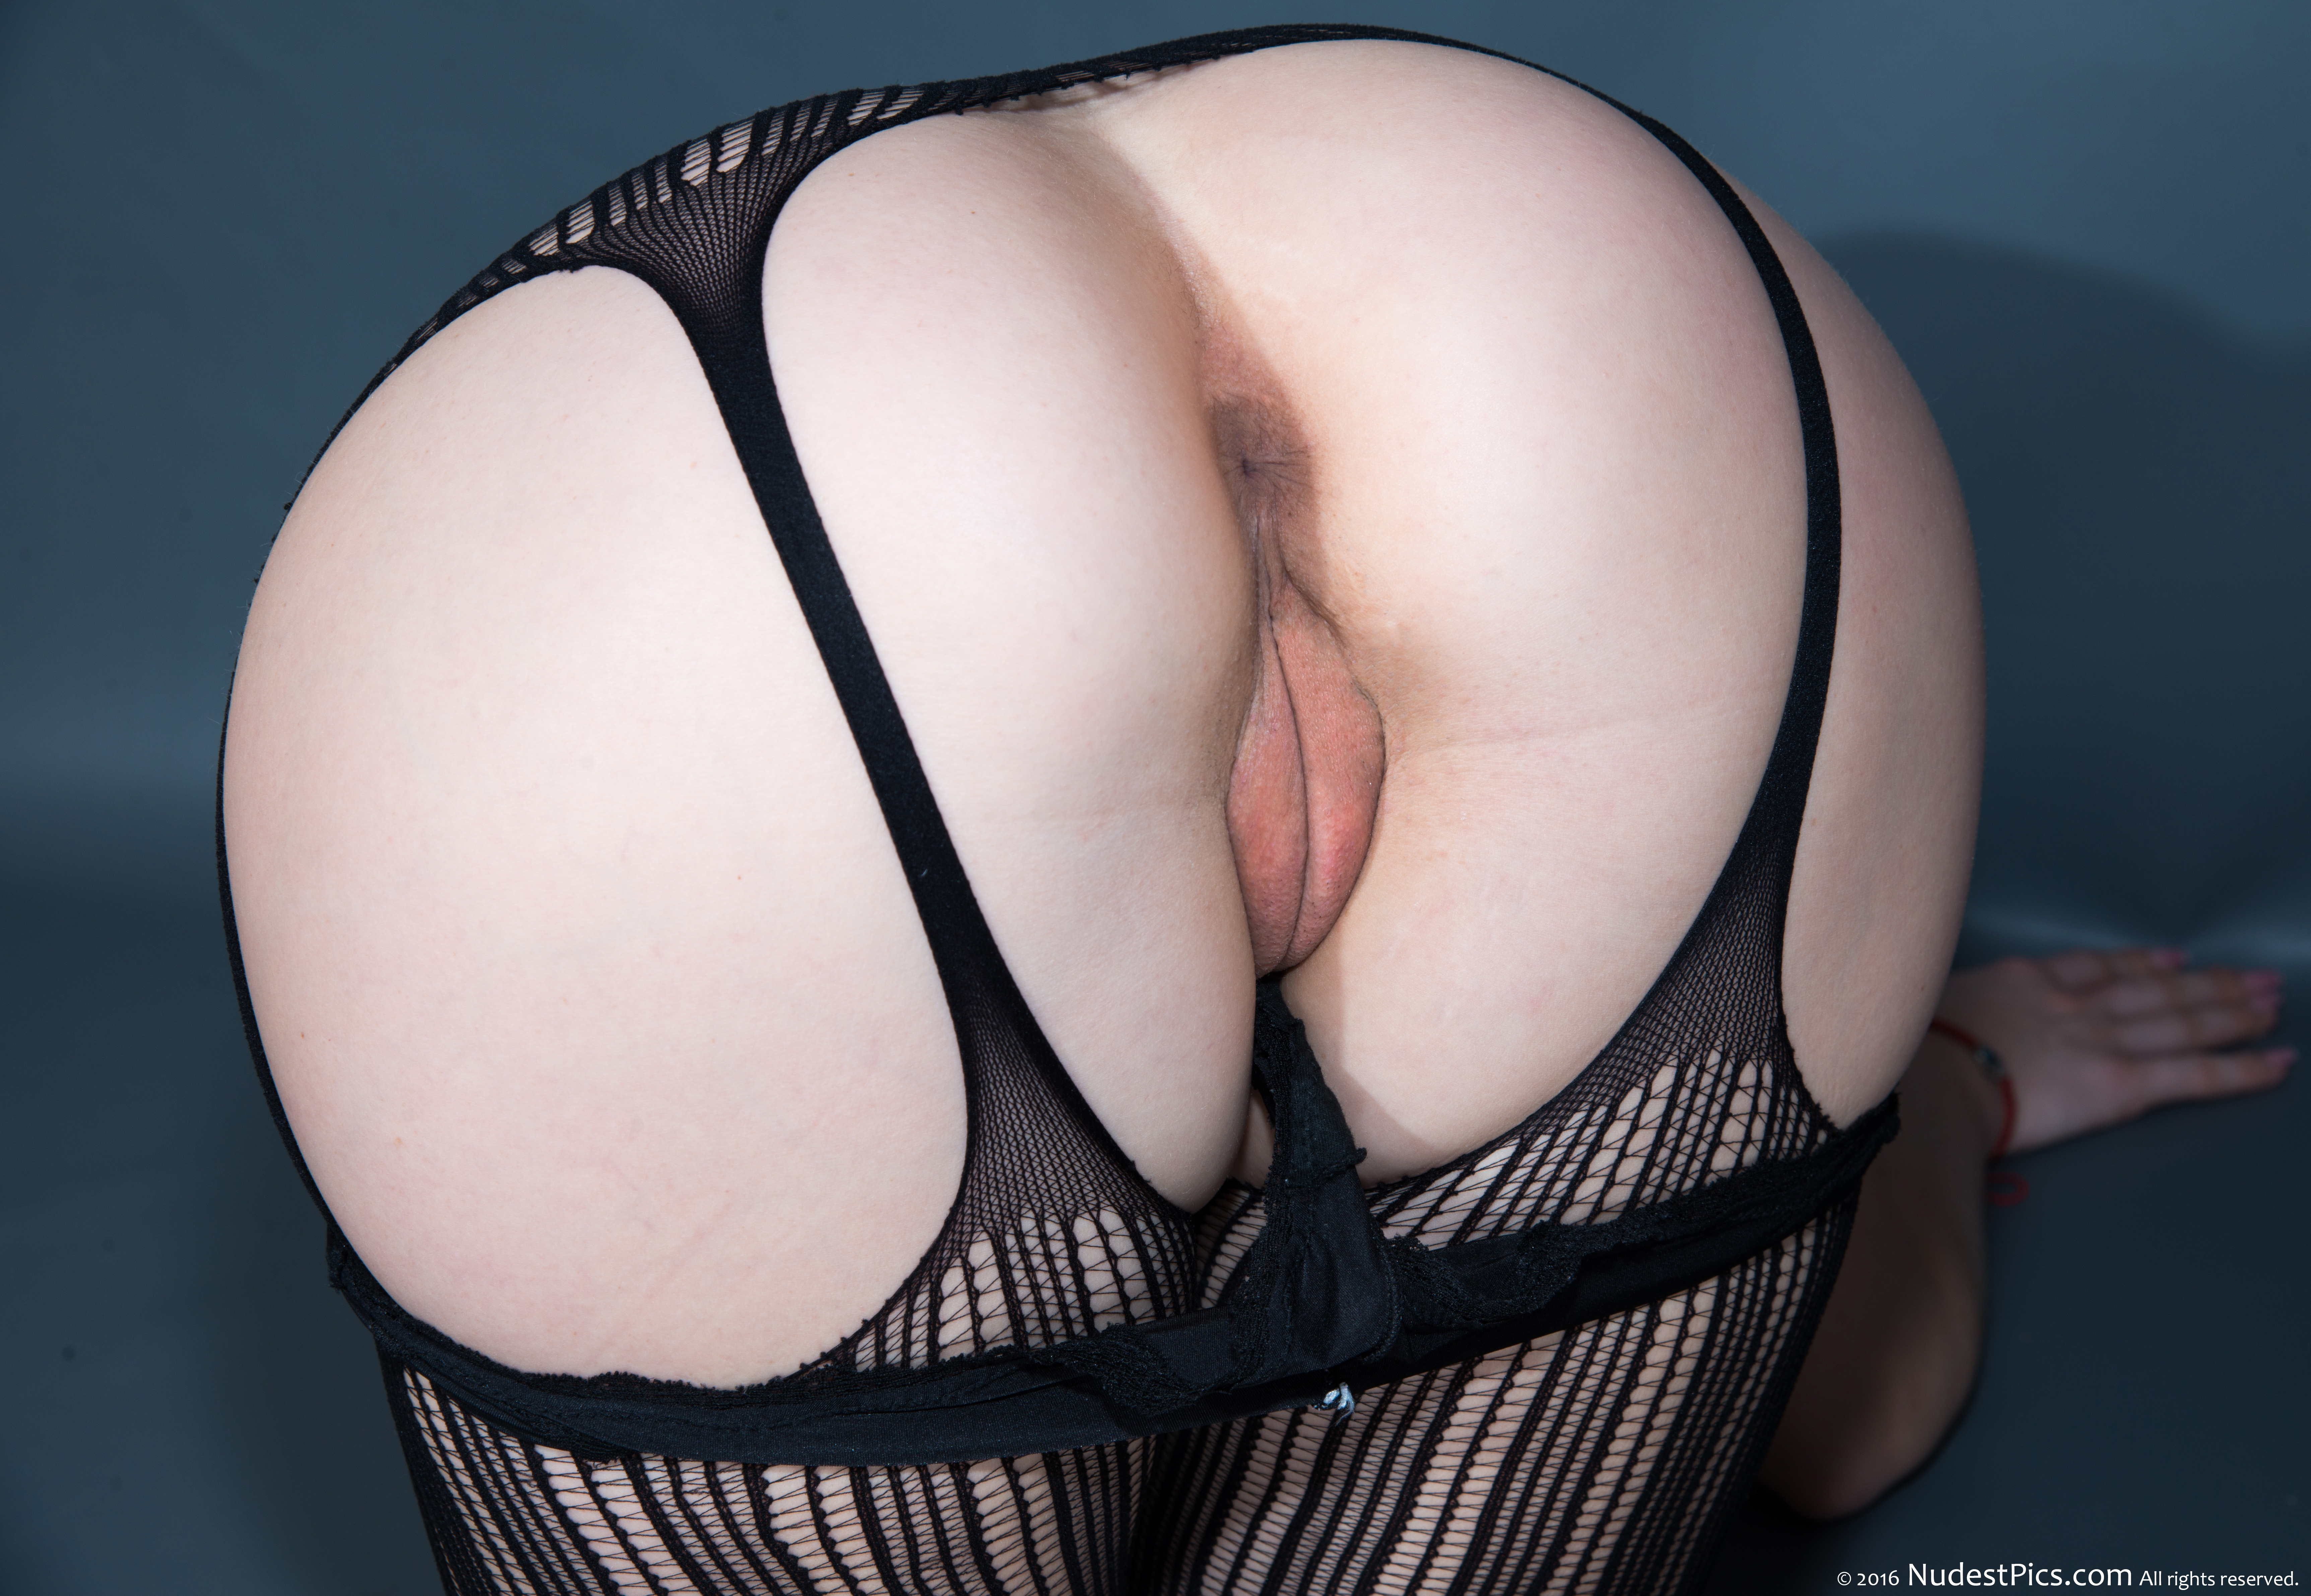 Sensuous White Booty & Pussy Up with Black Garters HD